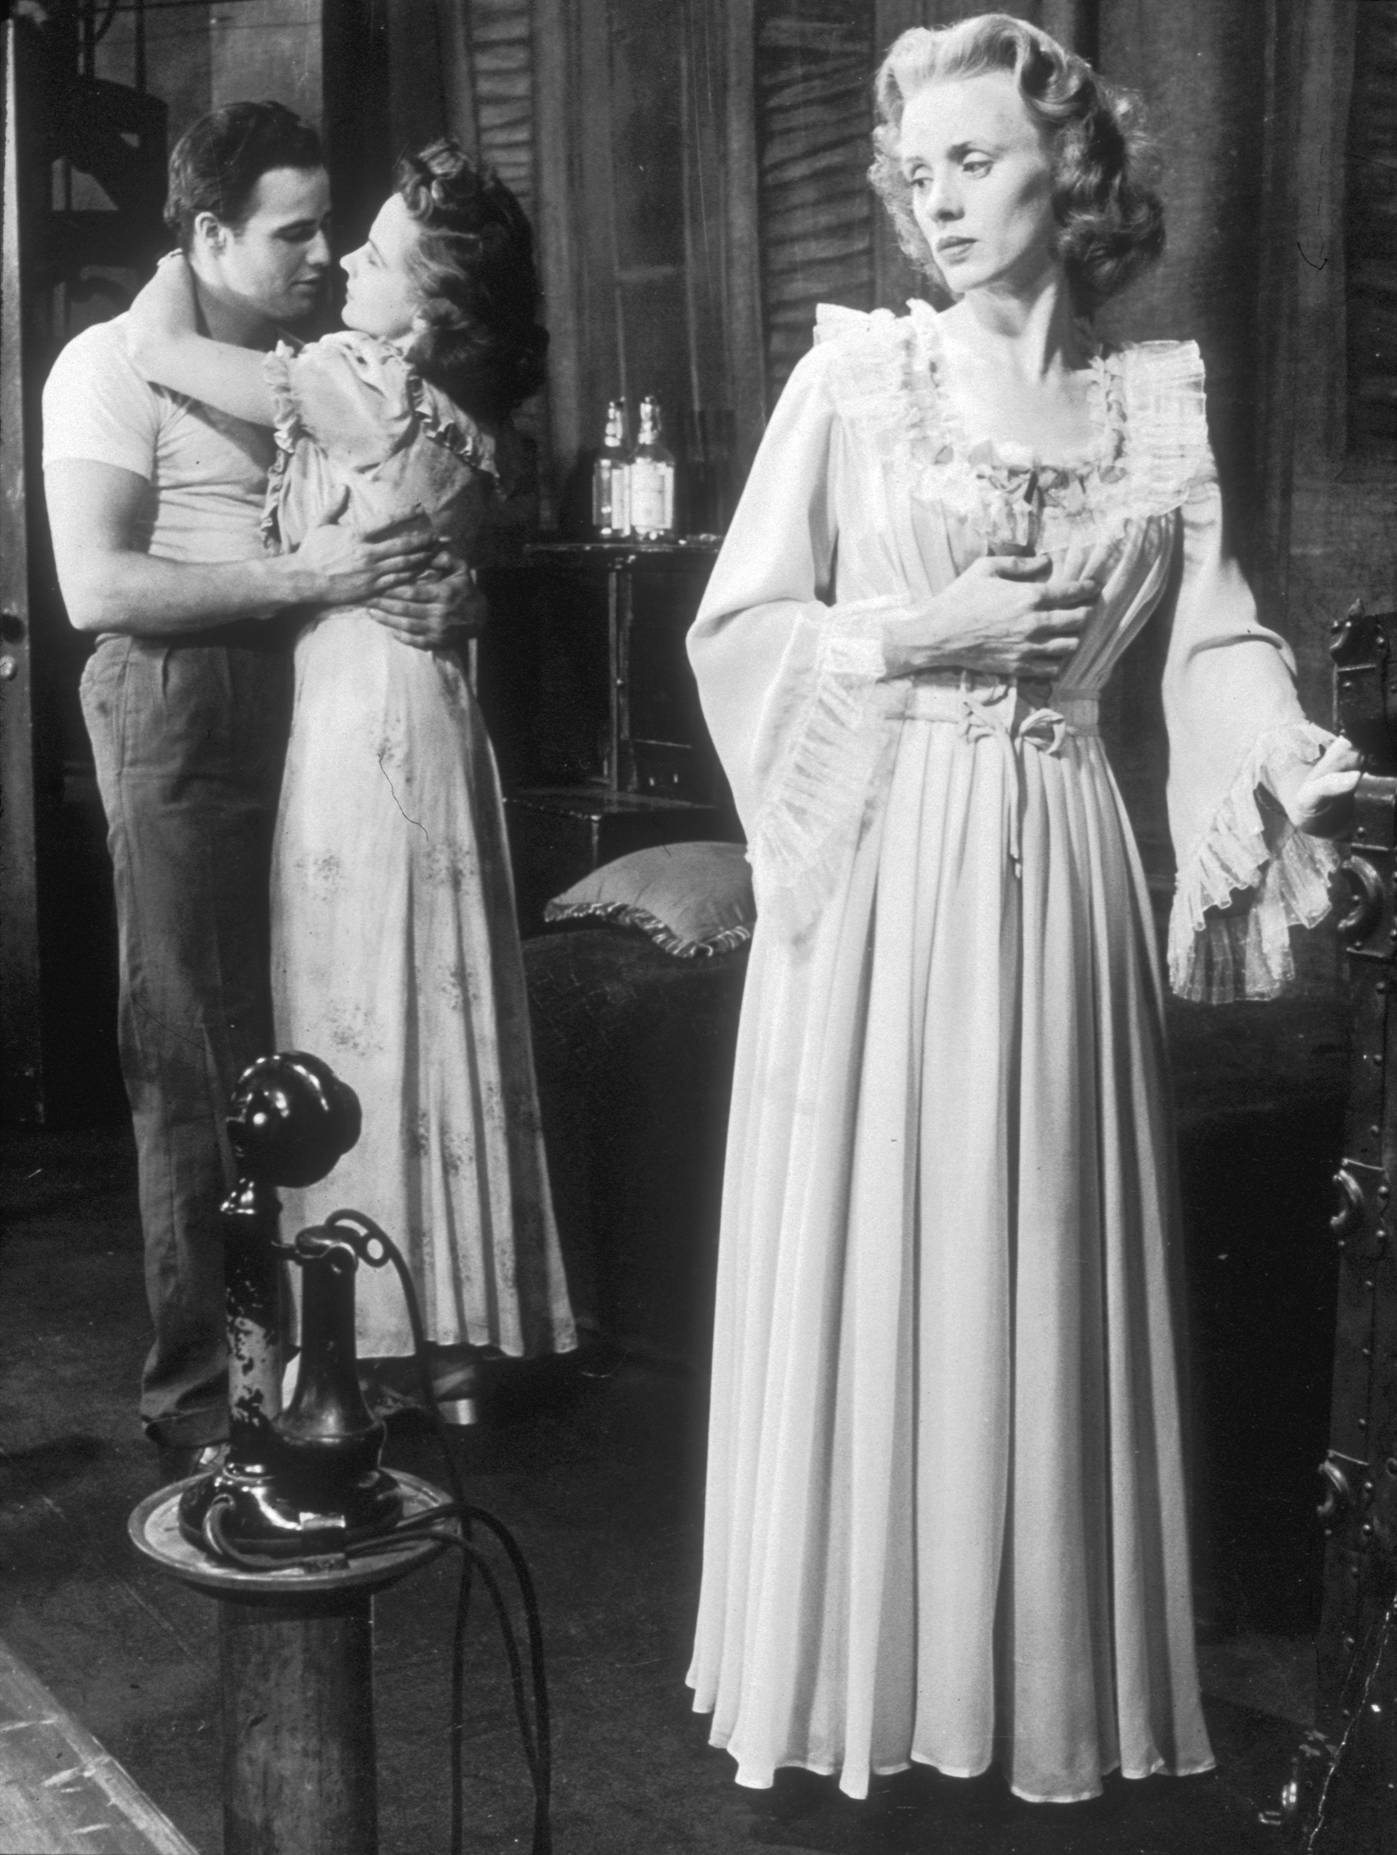 blanche in a streetcar named desire Fitting gassner's definition of a tragic character, blanche dubois in tennessee  william's a streetcar named desire caustically leads herself to her own downfall.